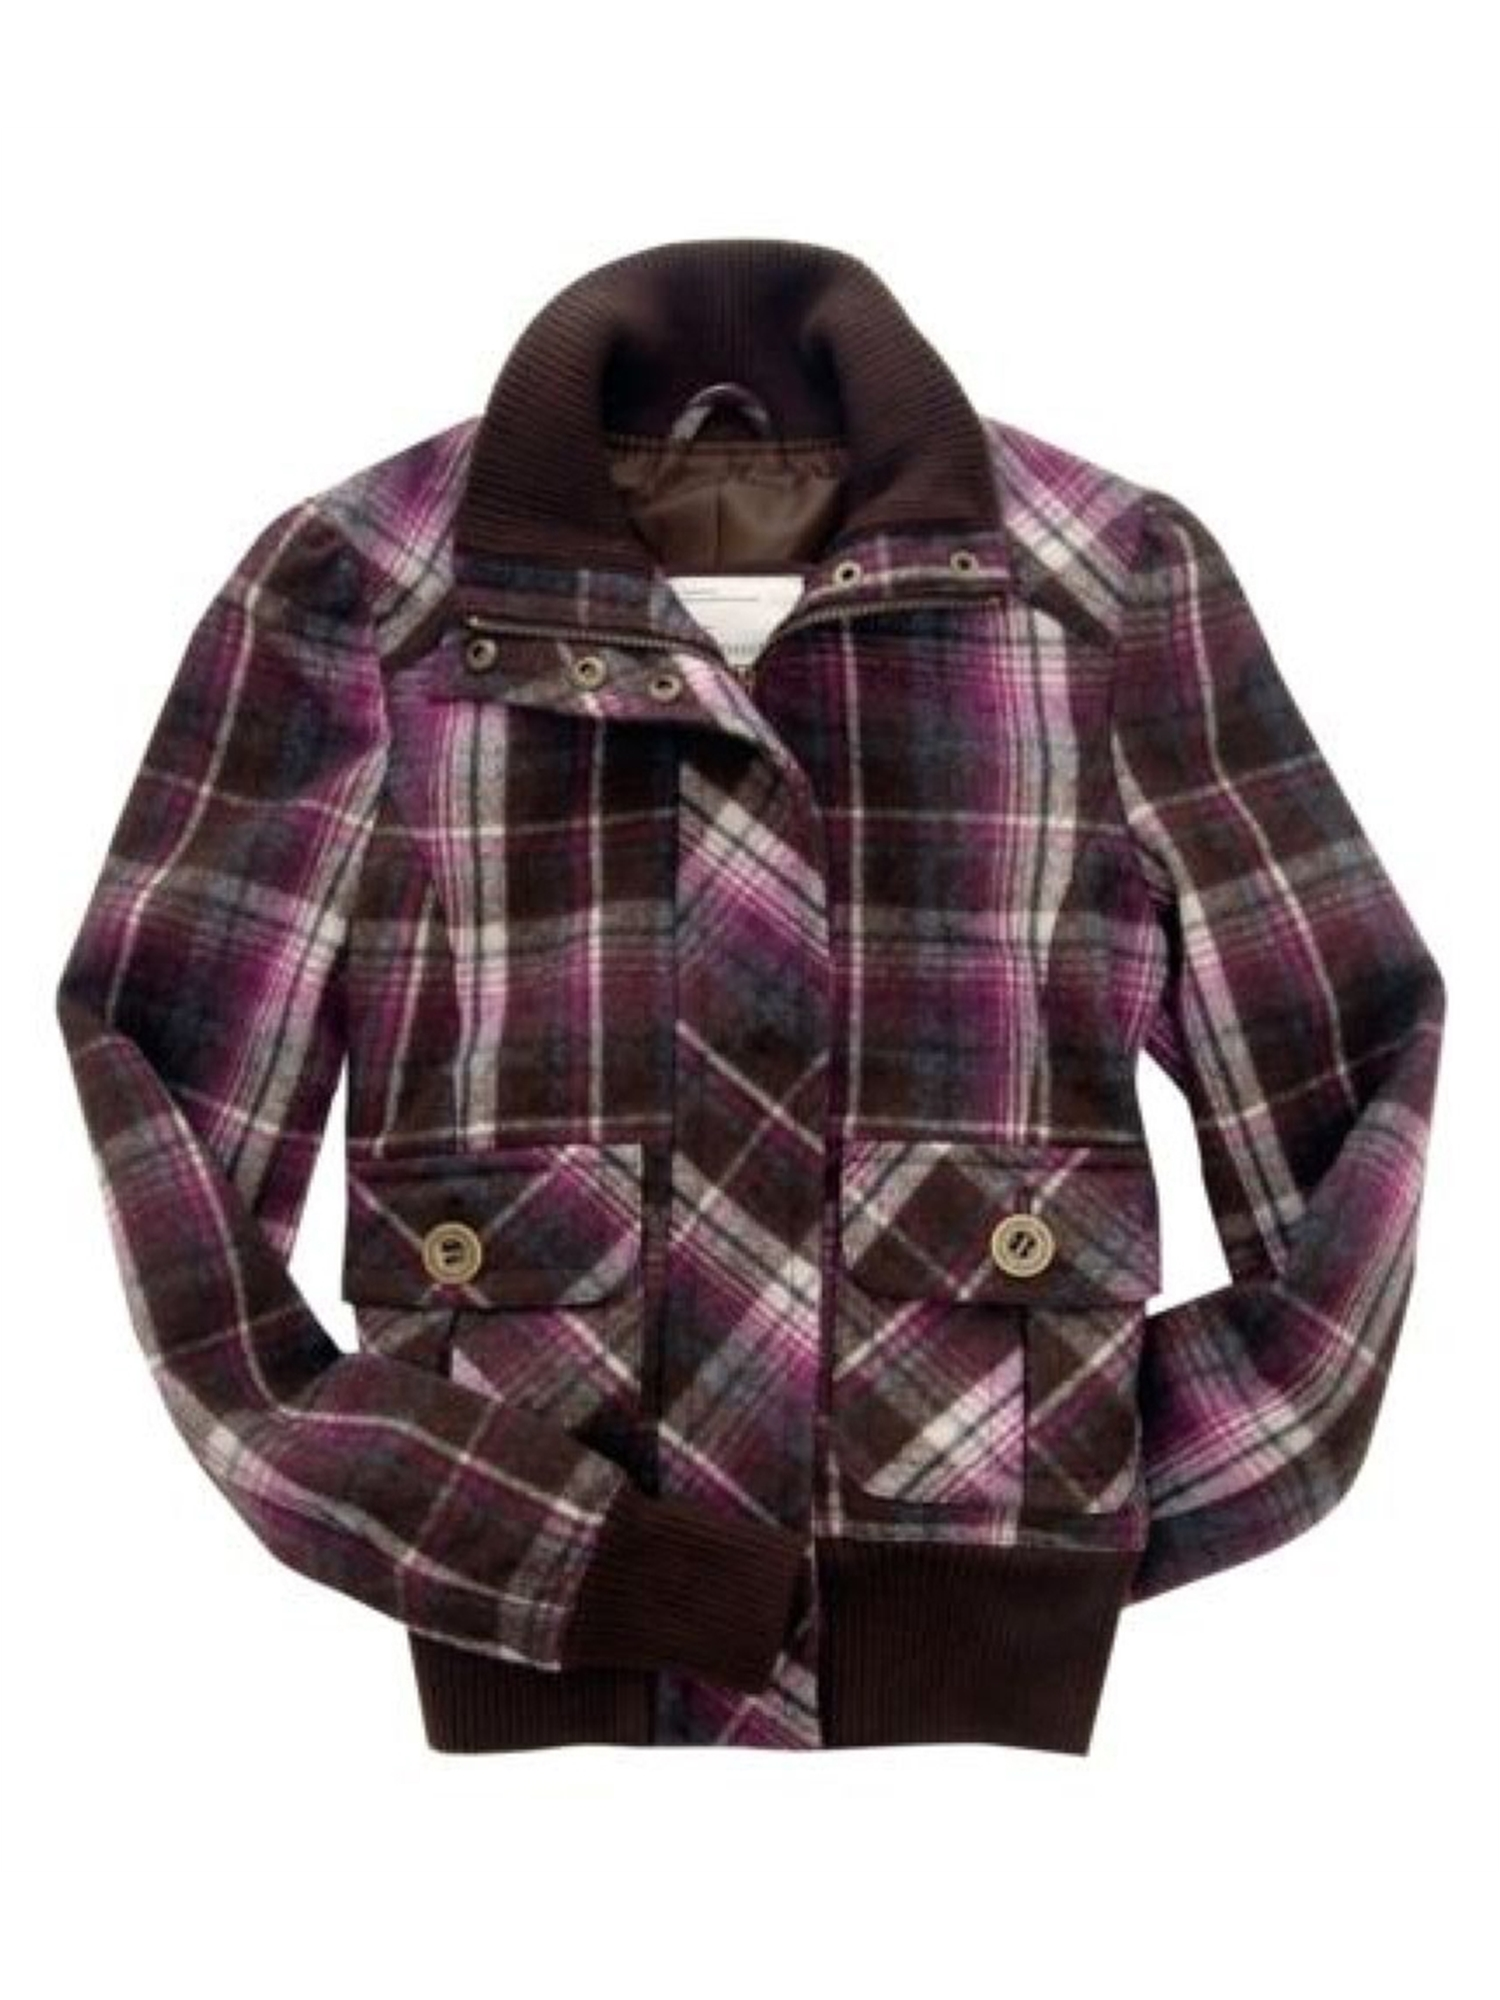 Aeropostale Juniors Plaidlined Field Jacket Purpletwilight M - Juniors